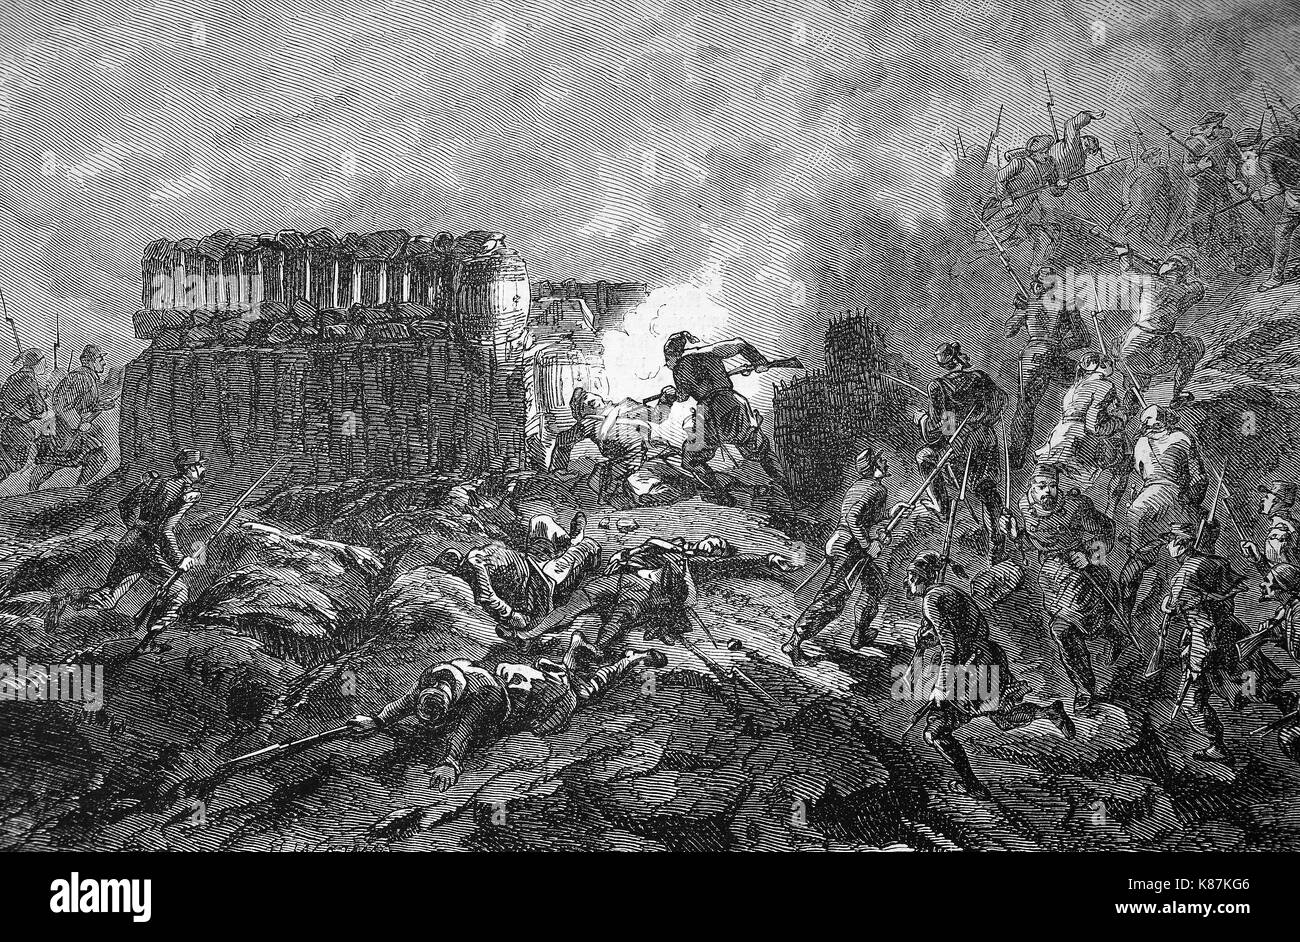 Crimean War 1855, Conquest of a Russian ambush at the Bastion, Digital improved reproduction of an original woodprint - Stock Image